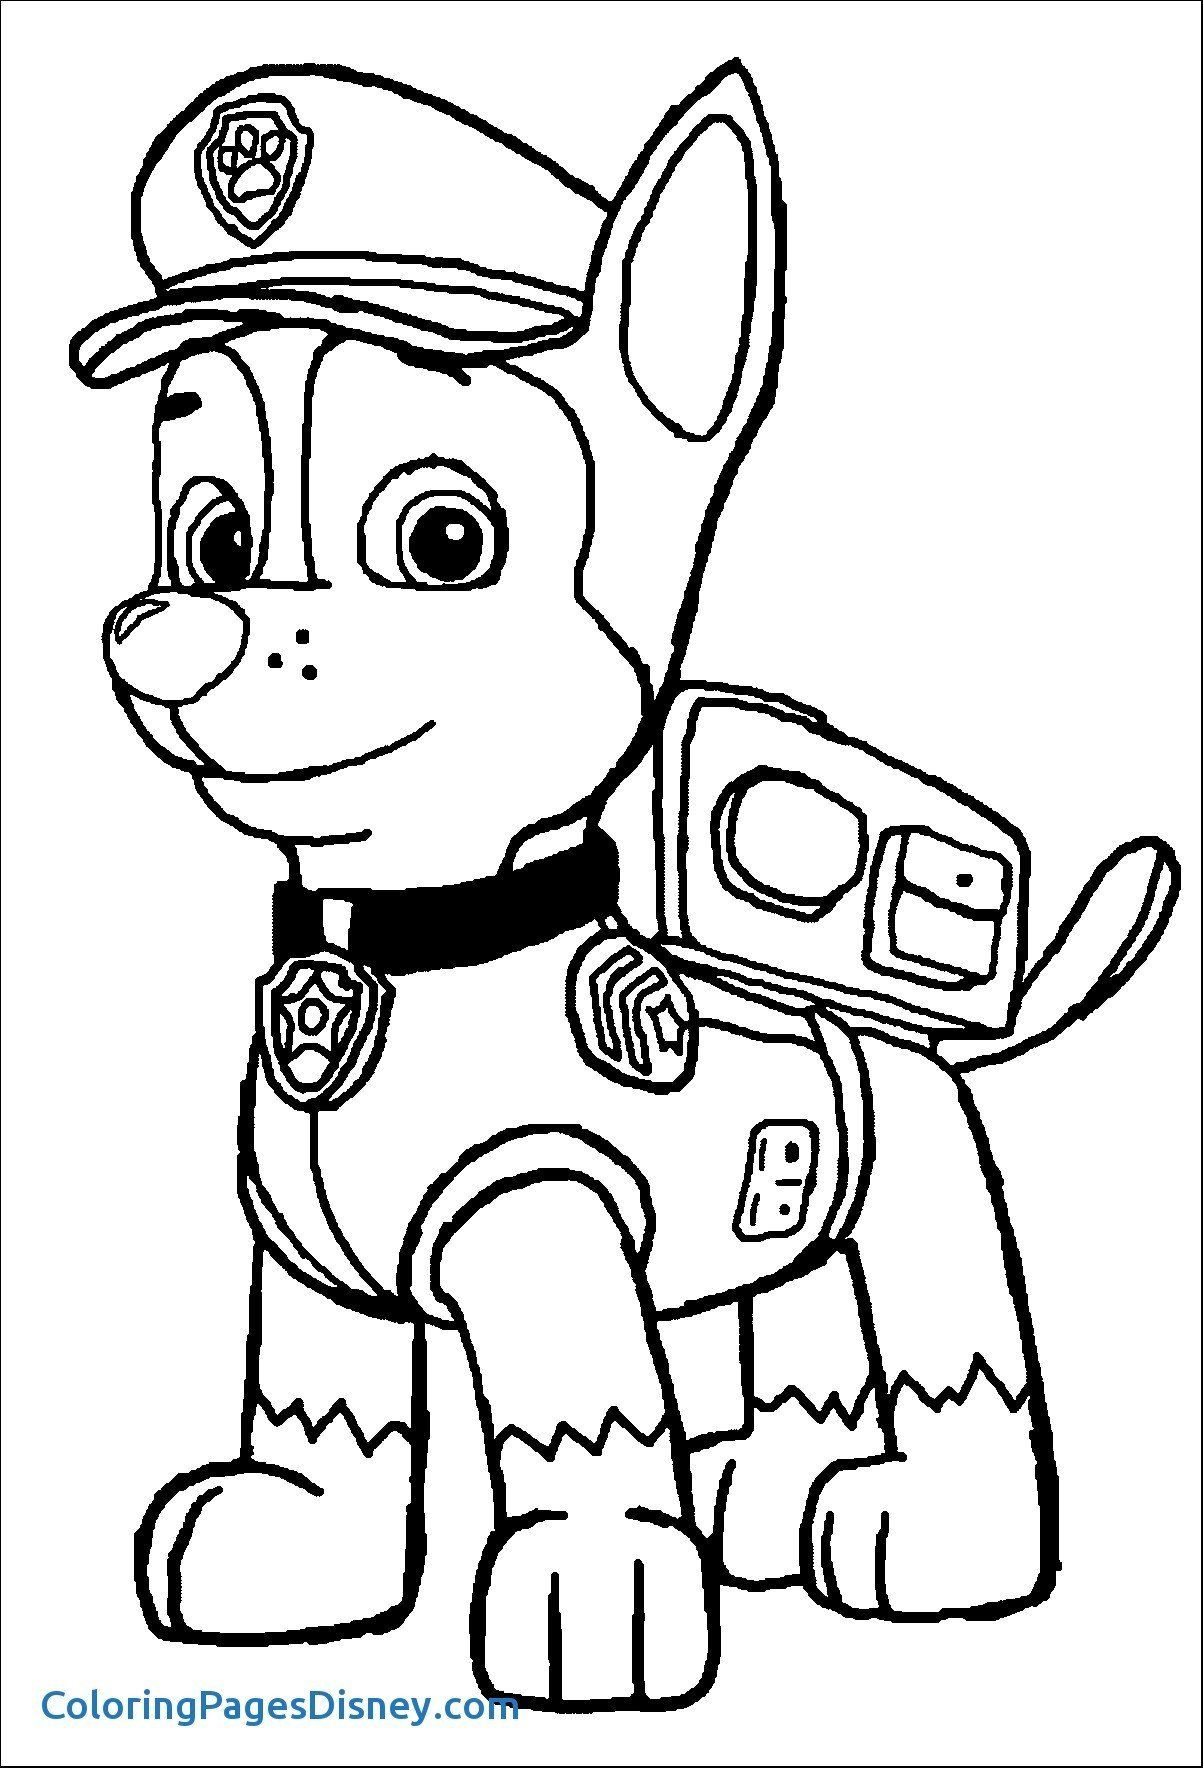 Paw Patrol Coloring Pages Zuma Coloring Pages Coloring Paw Patrol Book To Print Free Paw Patrol Coloring Pages Halloween Coloring Pages Paw Patrol Coloring